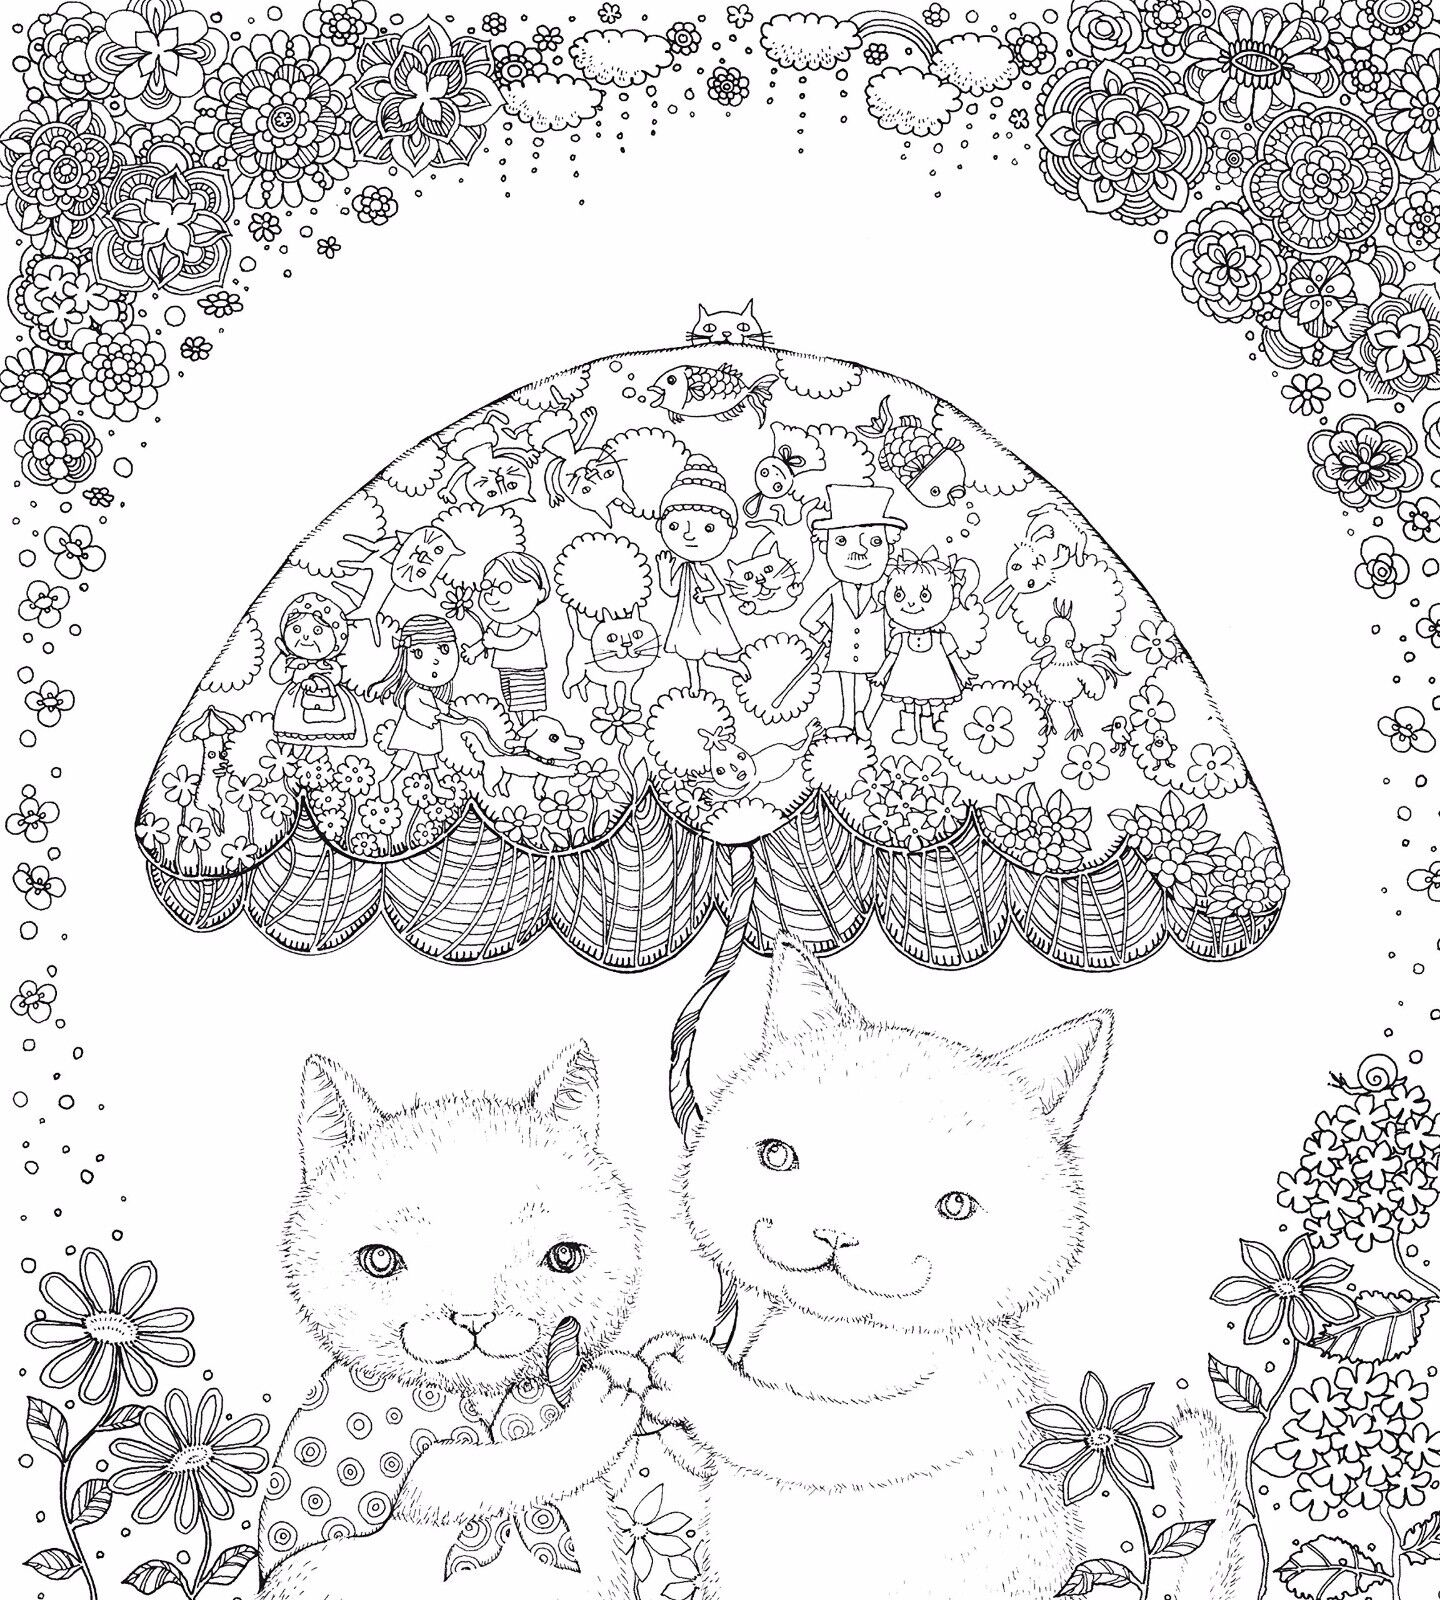 Coloring Book Mysterious World Of Cat Friends For Adult Paint Japan Japanese